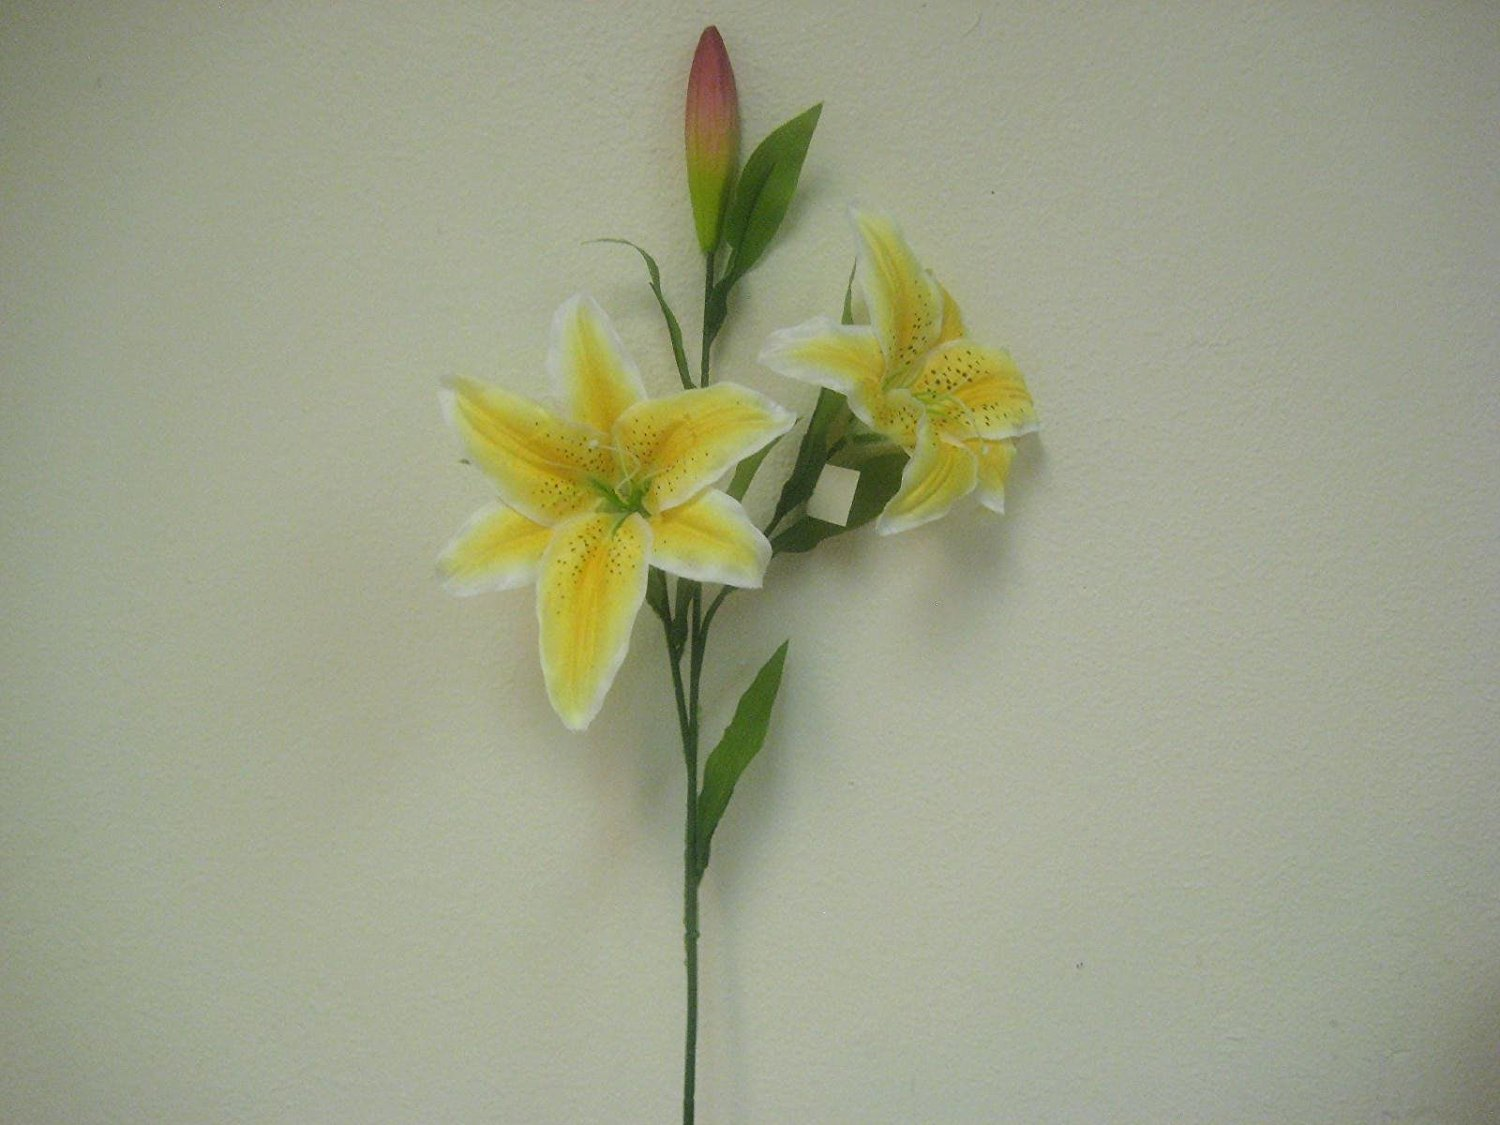 Cheap artificial tiger lily find artificial tiger lily deals on get quotations 2 sprays yellow jumbo tiger lily artificial silk flower 32 stem 2808yl izmirmasajfo